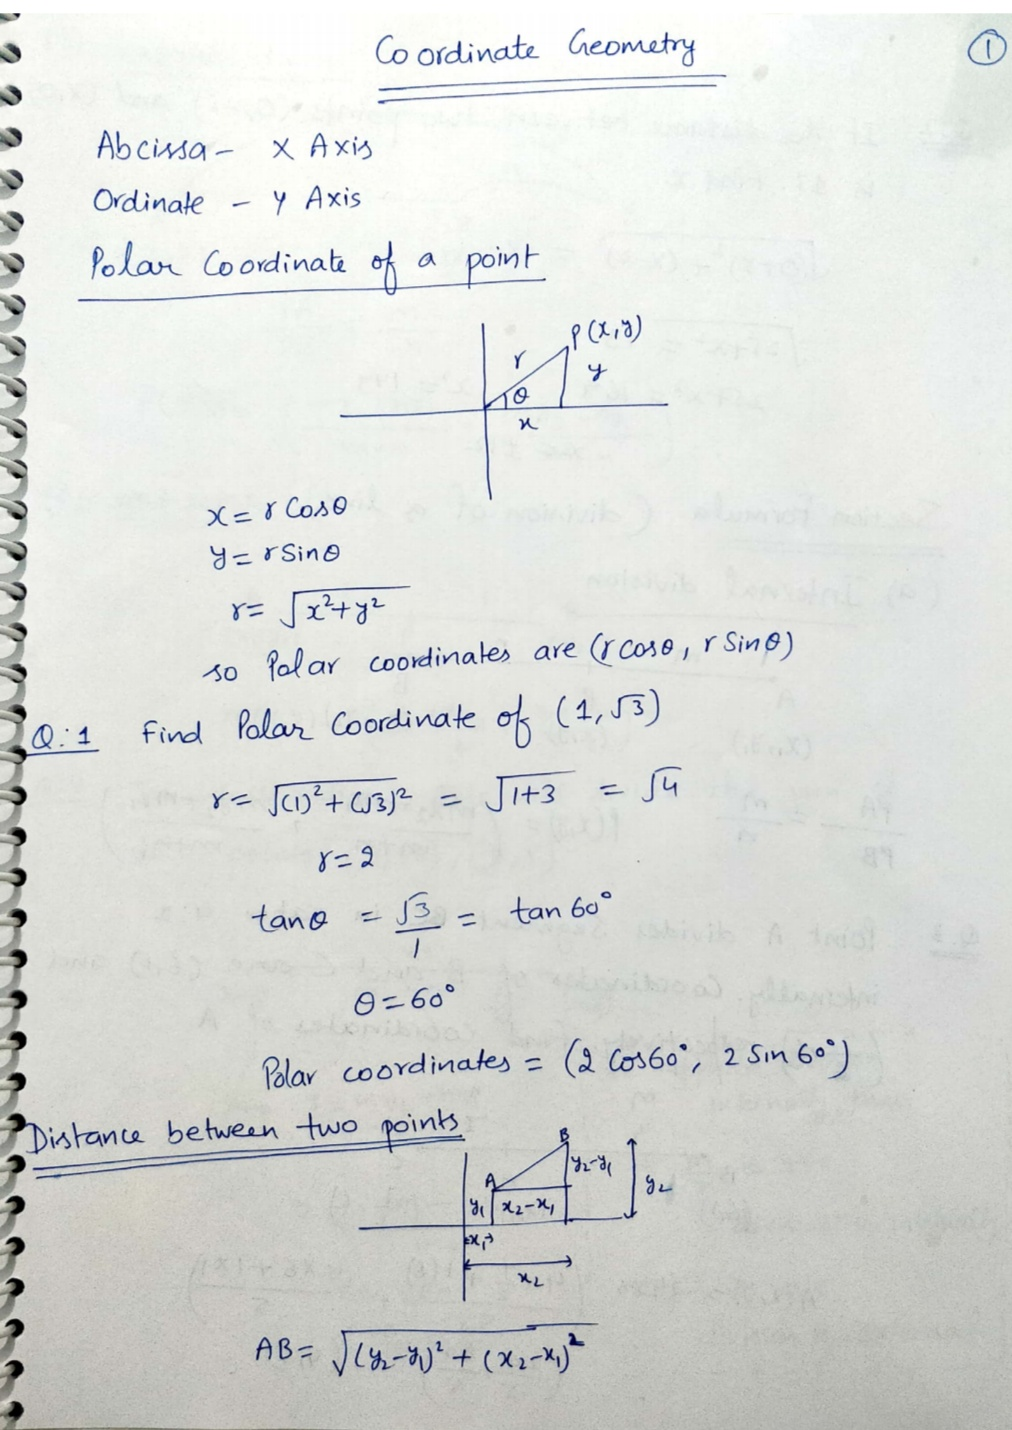 Abhinay Sharma : Coordinate Geometry Handwritten Notes - Gk